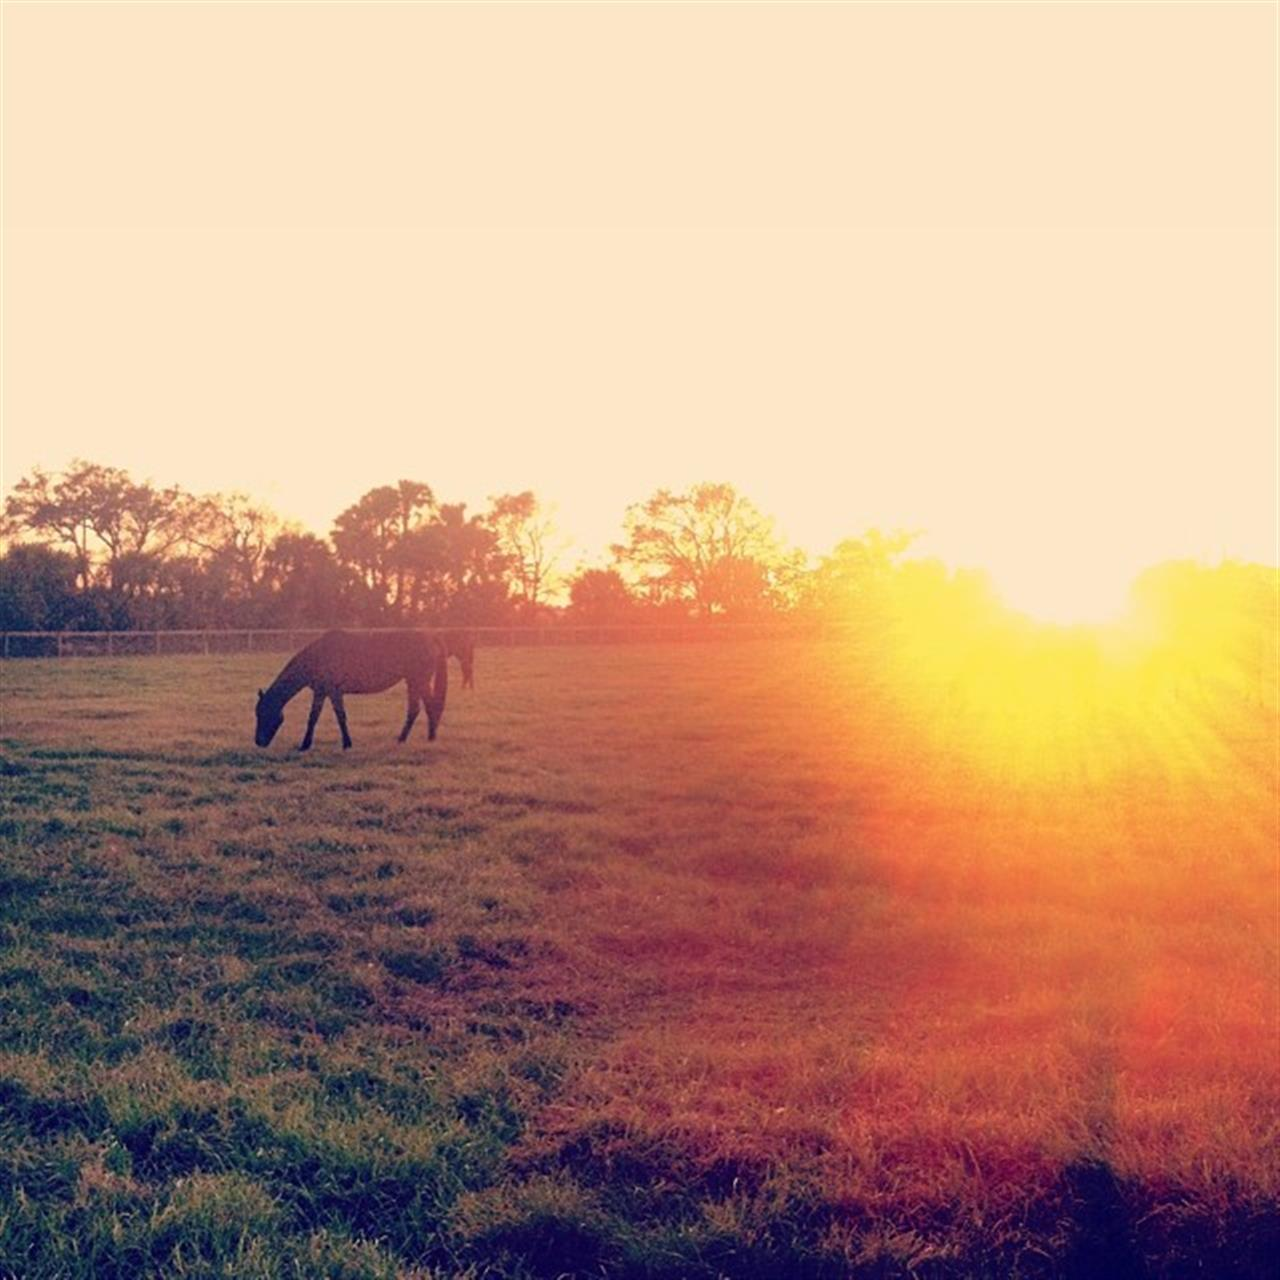 Horses & a Florida sunset. My happy place ? #homesweethome #farmlife #florida #sunset #horses #LeadingRELocal #VeroBeach